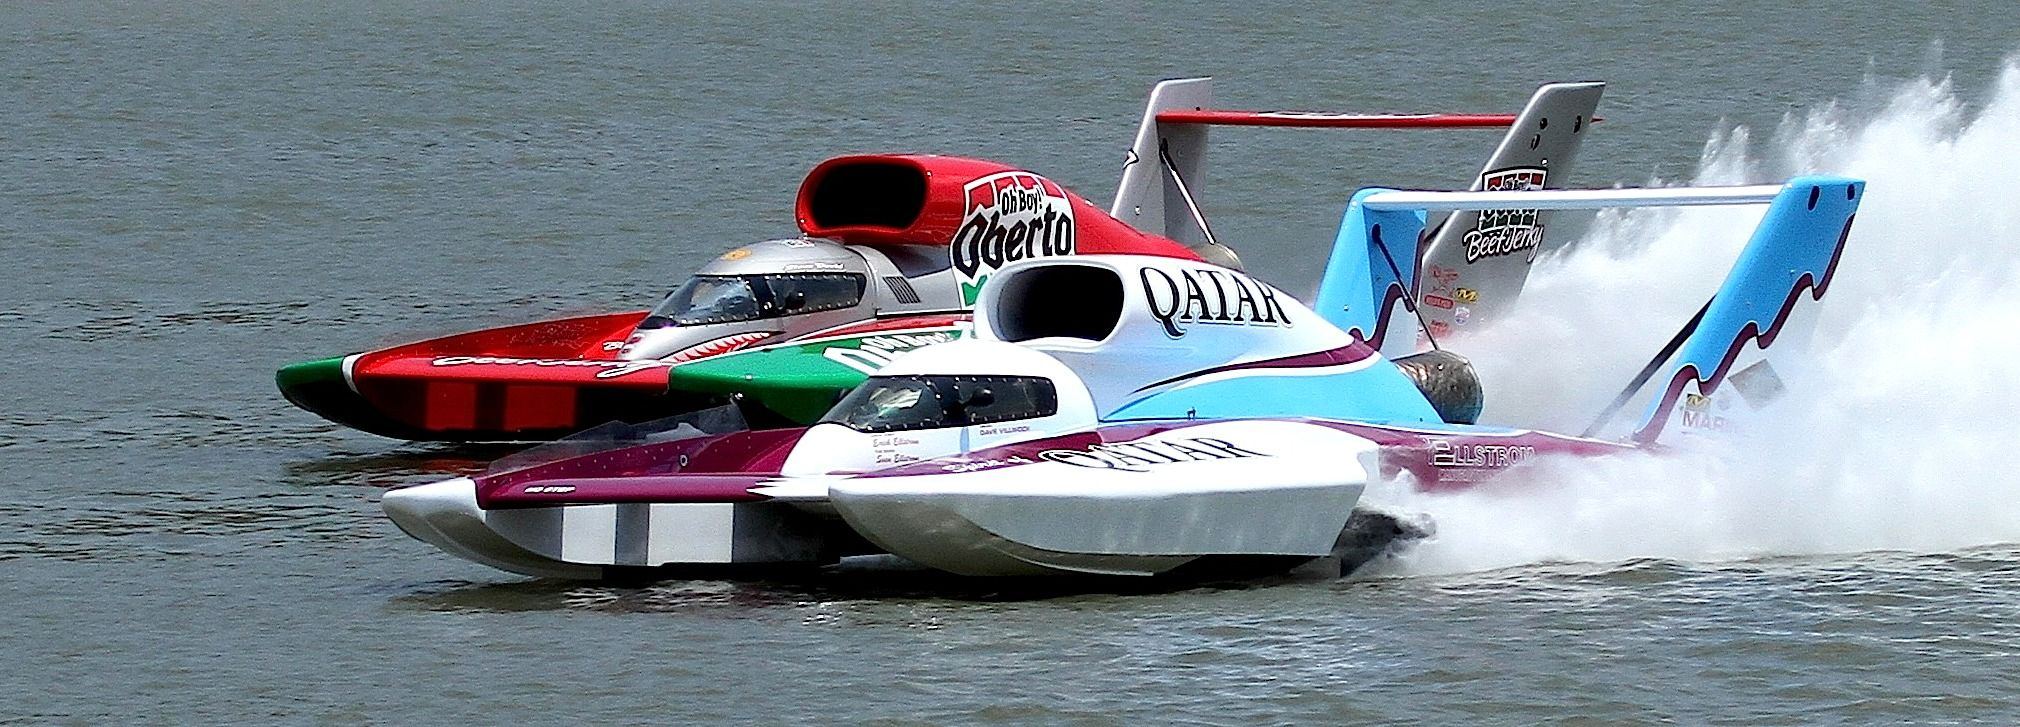 H1 Unlimited Hydroplane Series Hydroplanes Roaring Back To Life Hydroplane Hydroplane Boats Drag Boat Racing